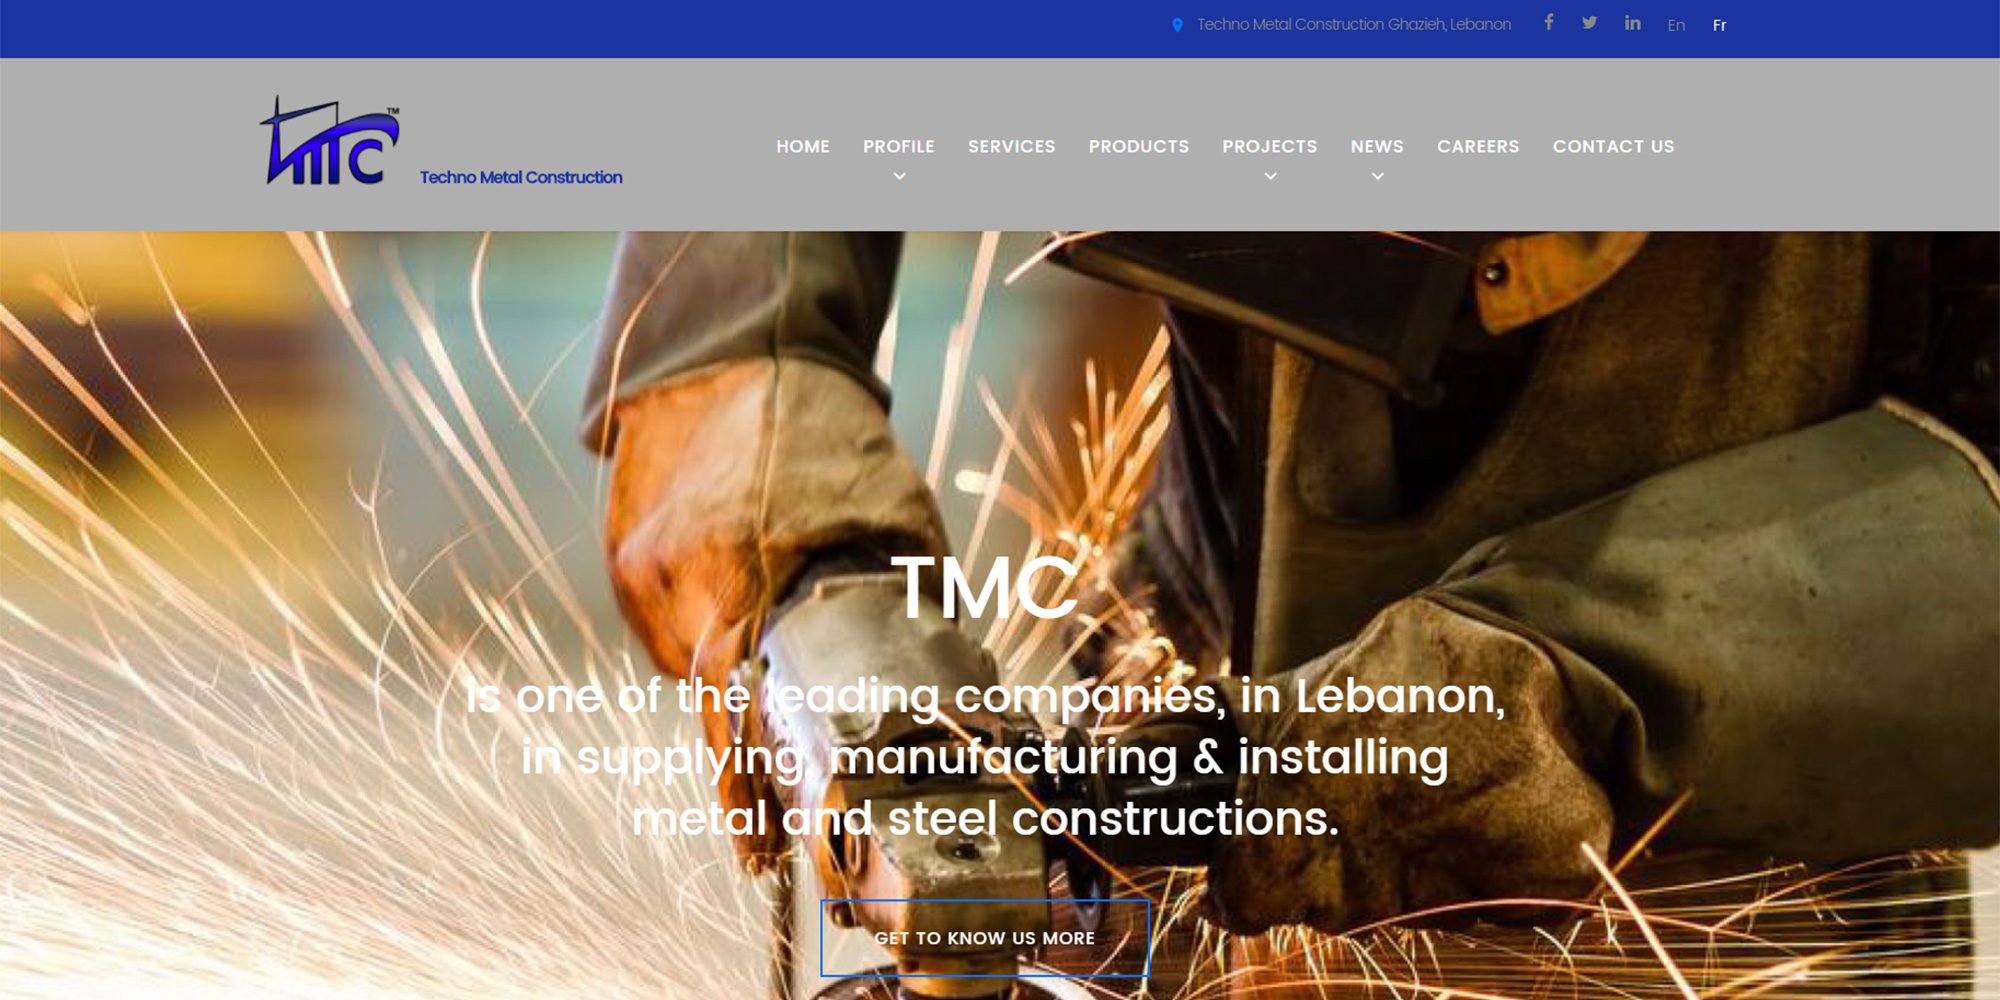 New-Look TMC Website Launched Today